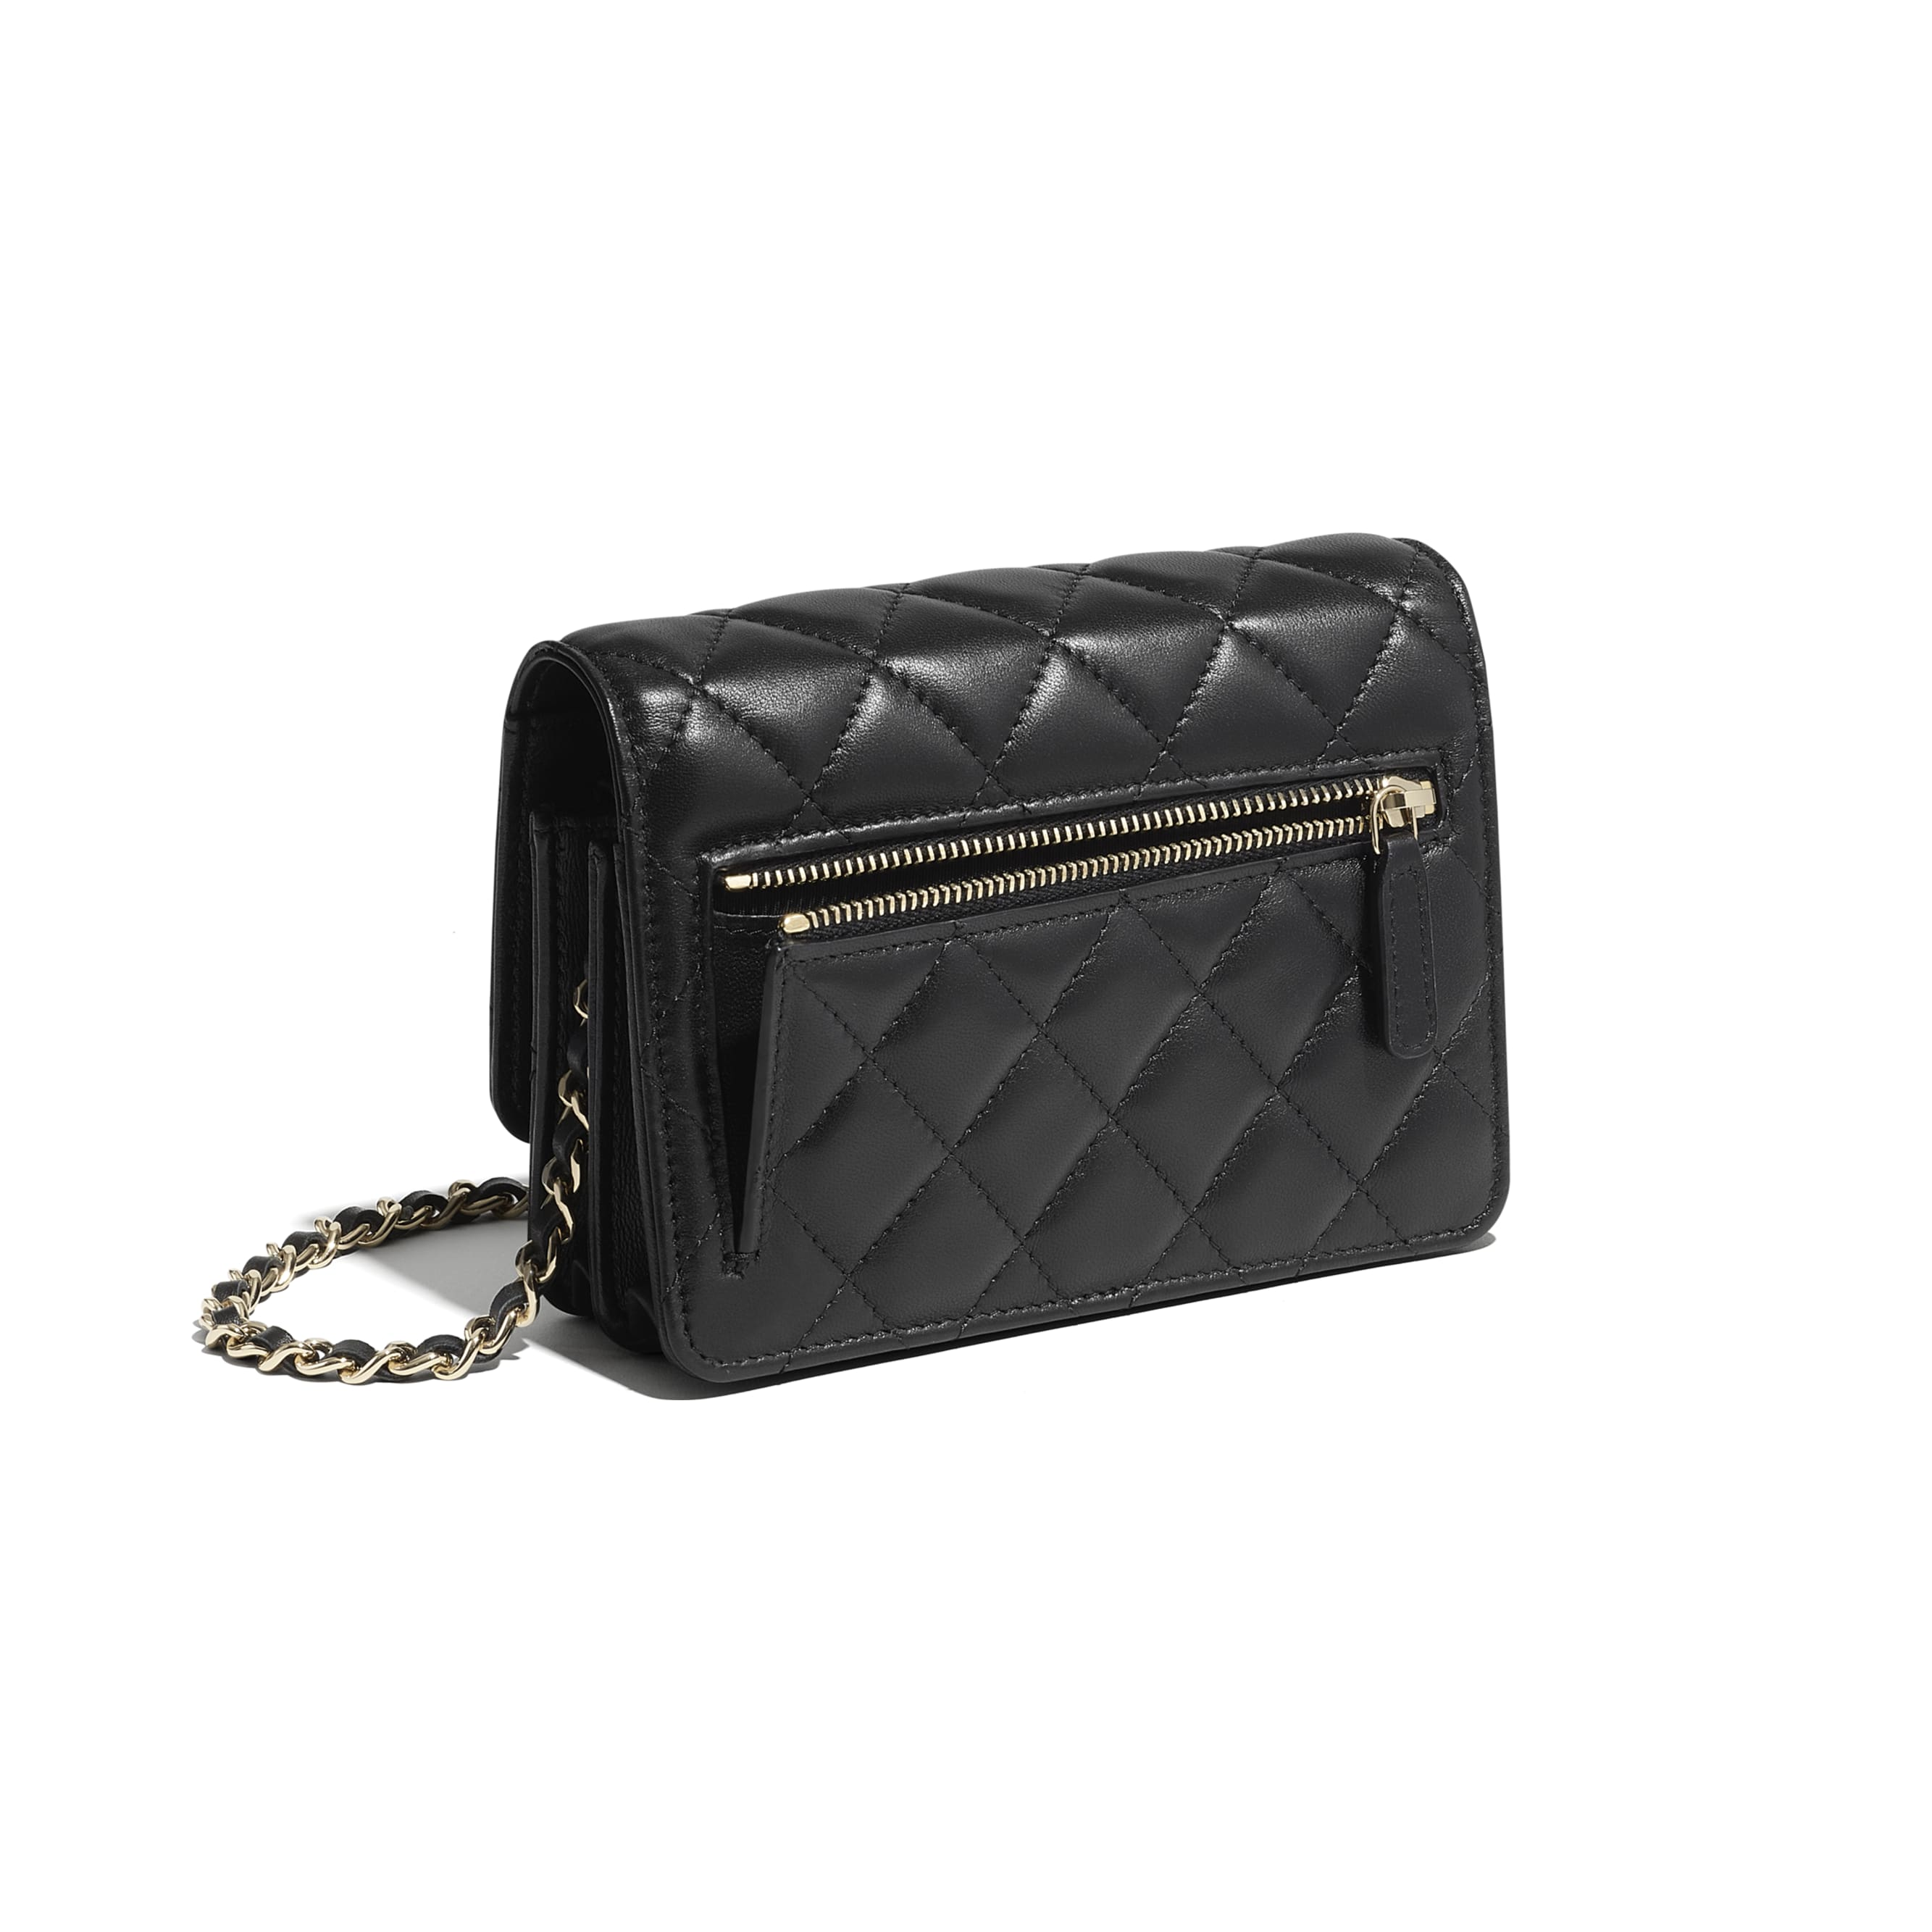 Mini Wallet on Chain - Black - Lambskin - CHANEL - Extra view - see standard sized version